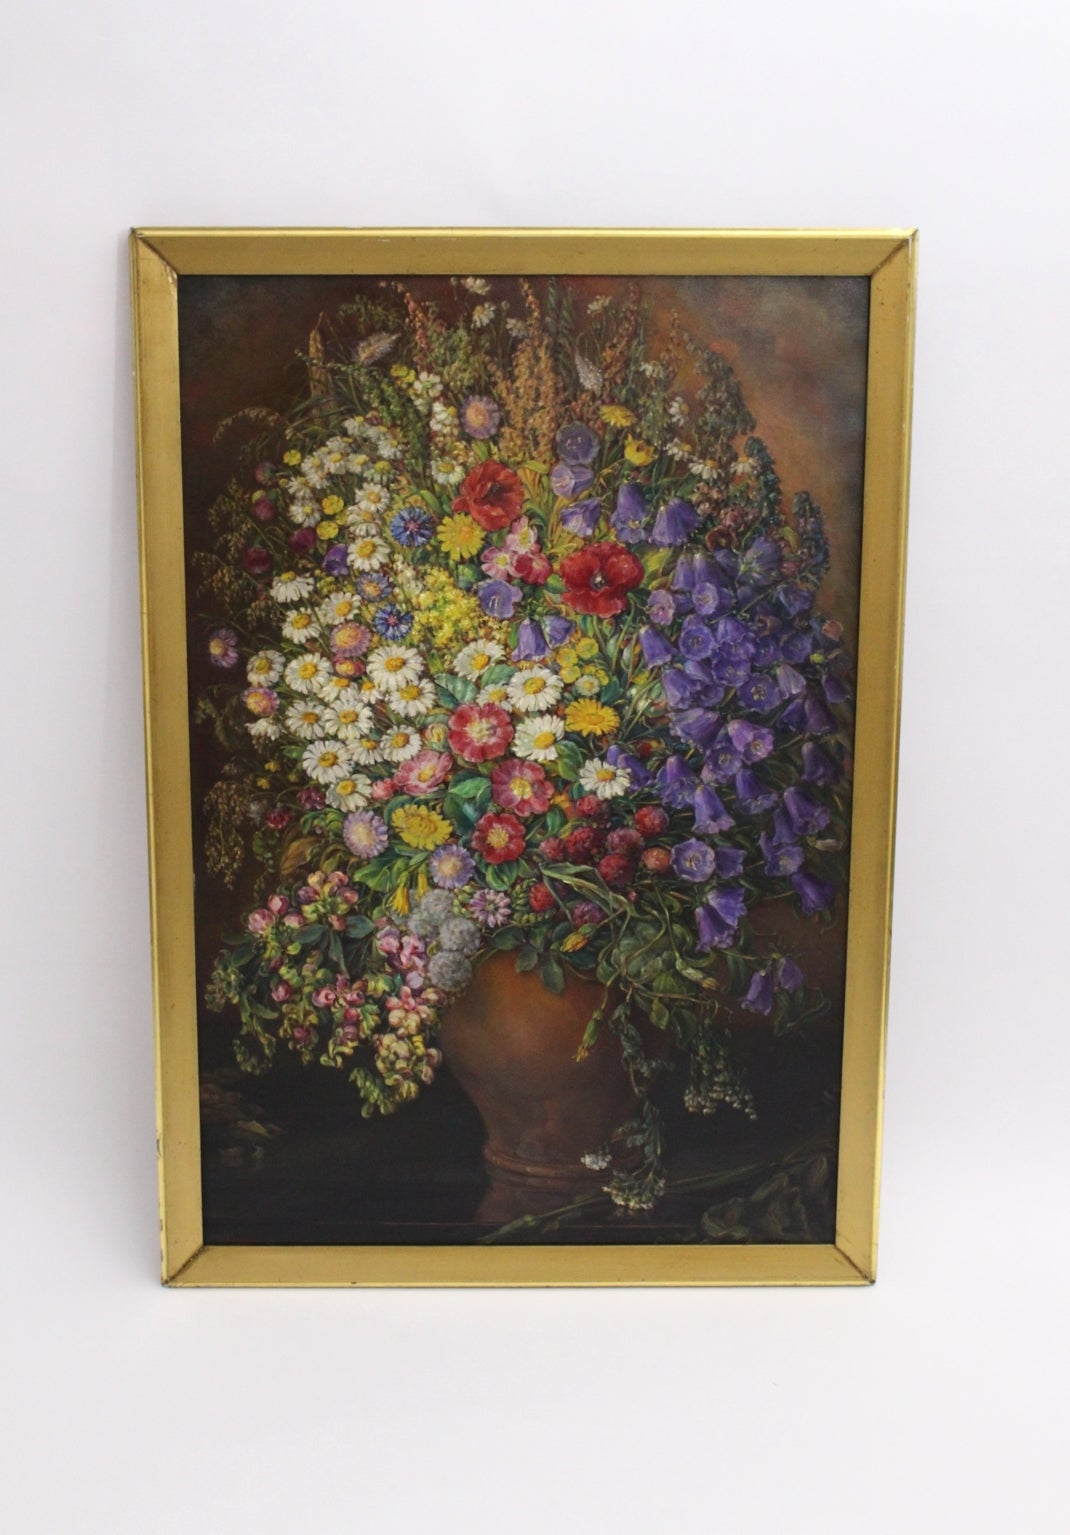 Art Deco Vintage Painting Oil on Canvas Field Flowers by Emil Fiala 1933, Vienna In Good Condition For Sale In Vienna, AT